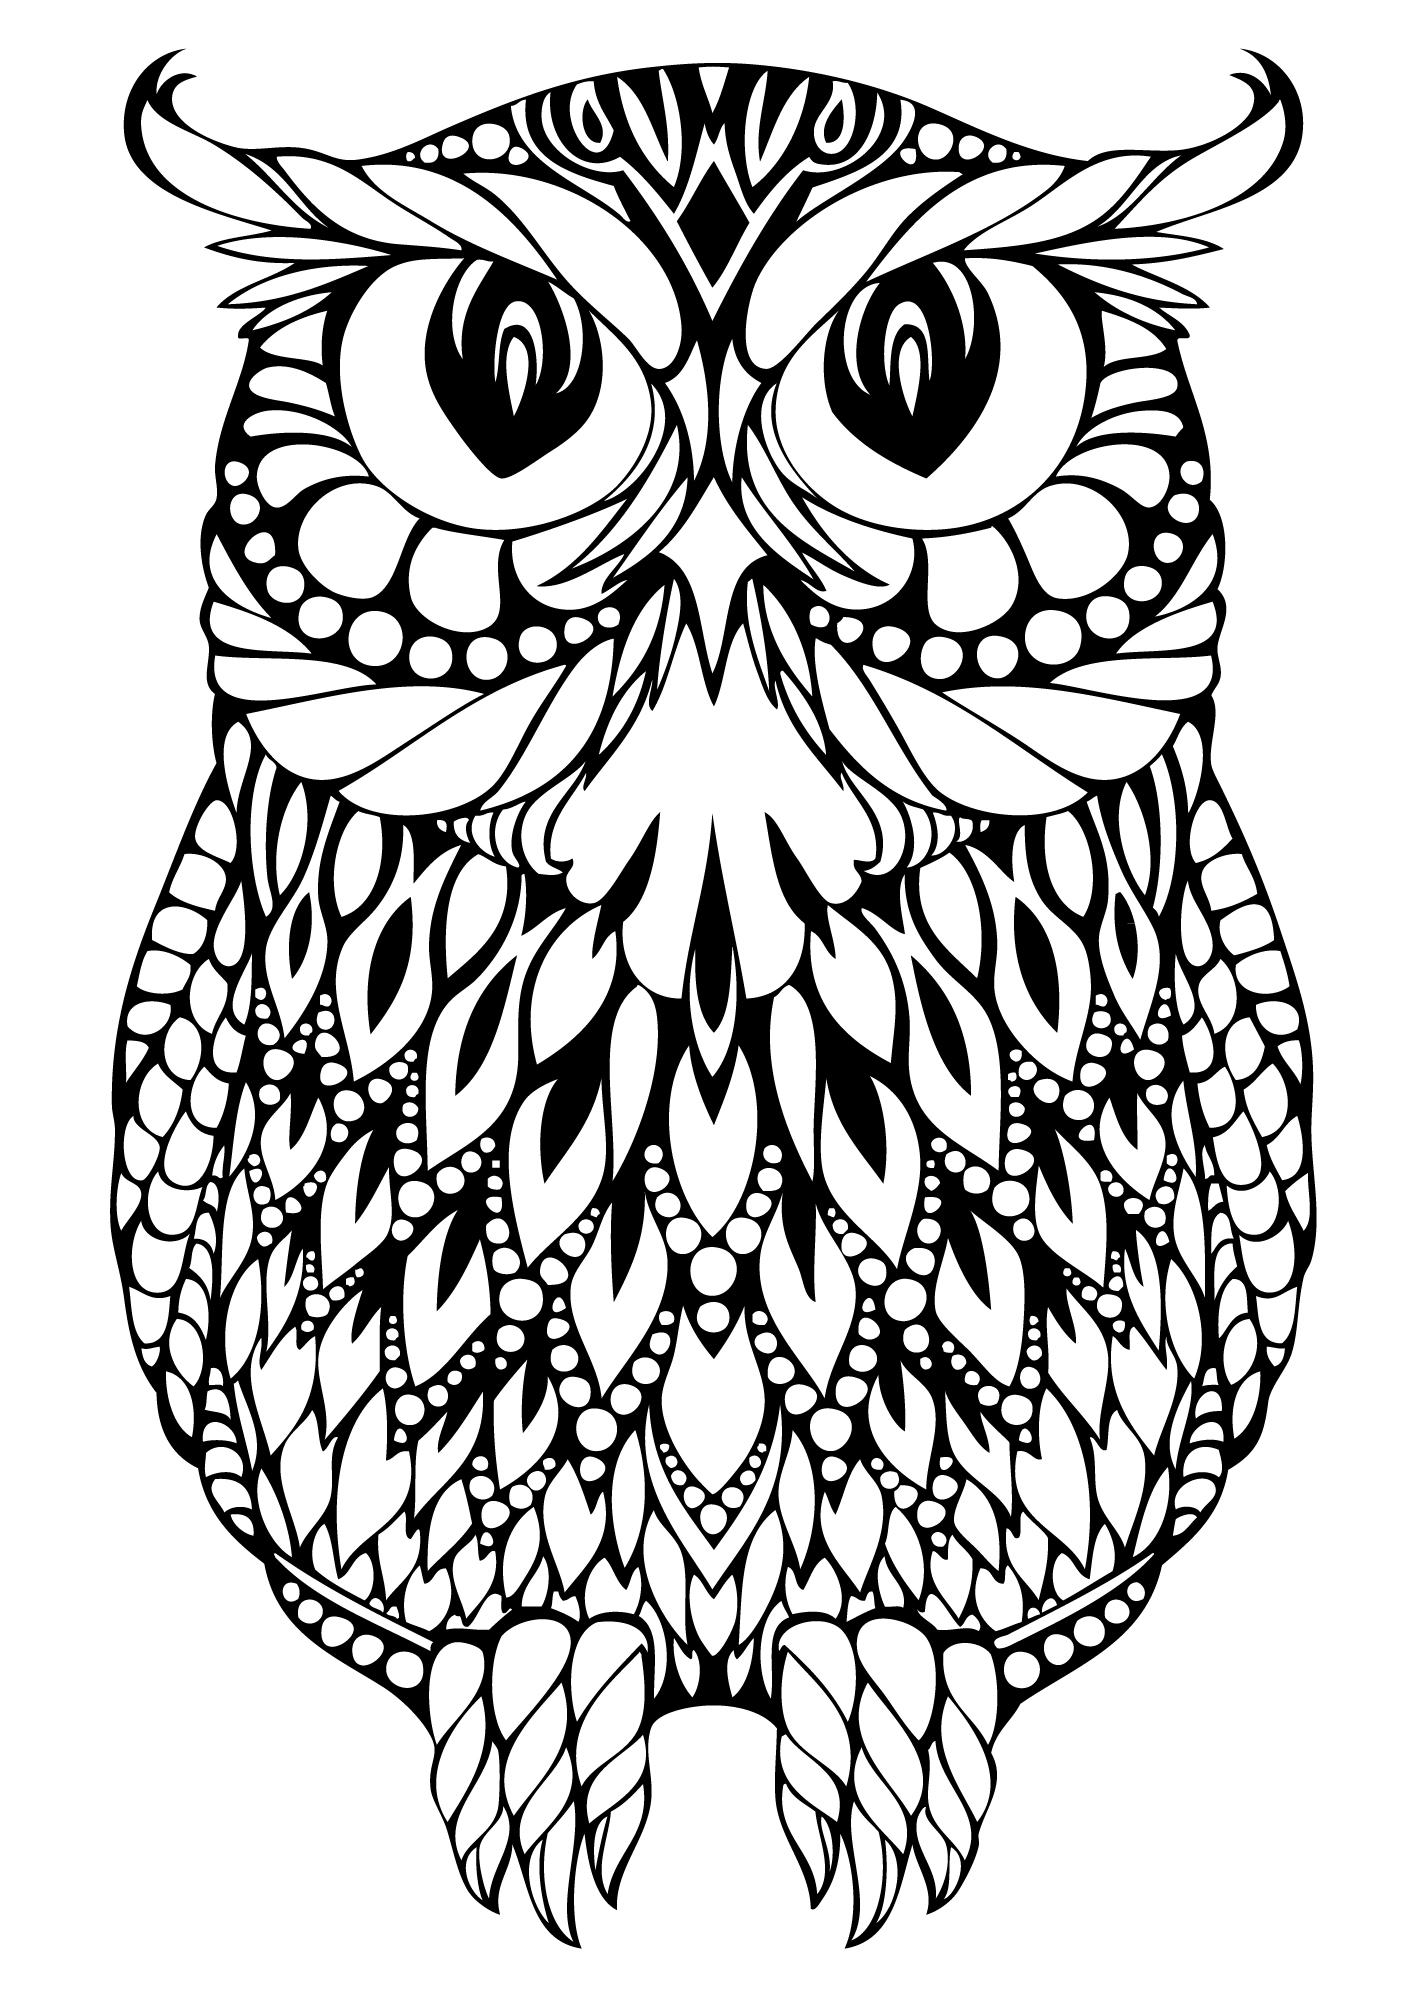 Adorable Animals Clipart Coloring Pages Difficult to Color Gallery Of Stress Relief Coloring Pages Animals Funny Coloring Pages Printable